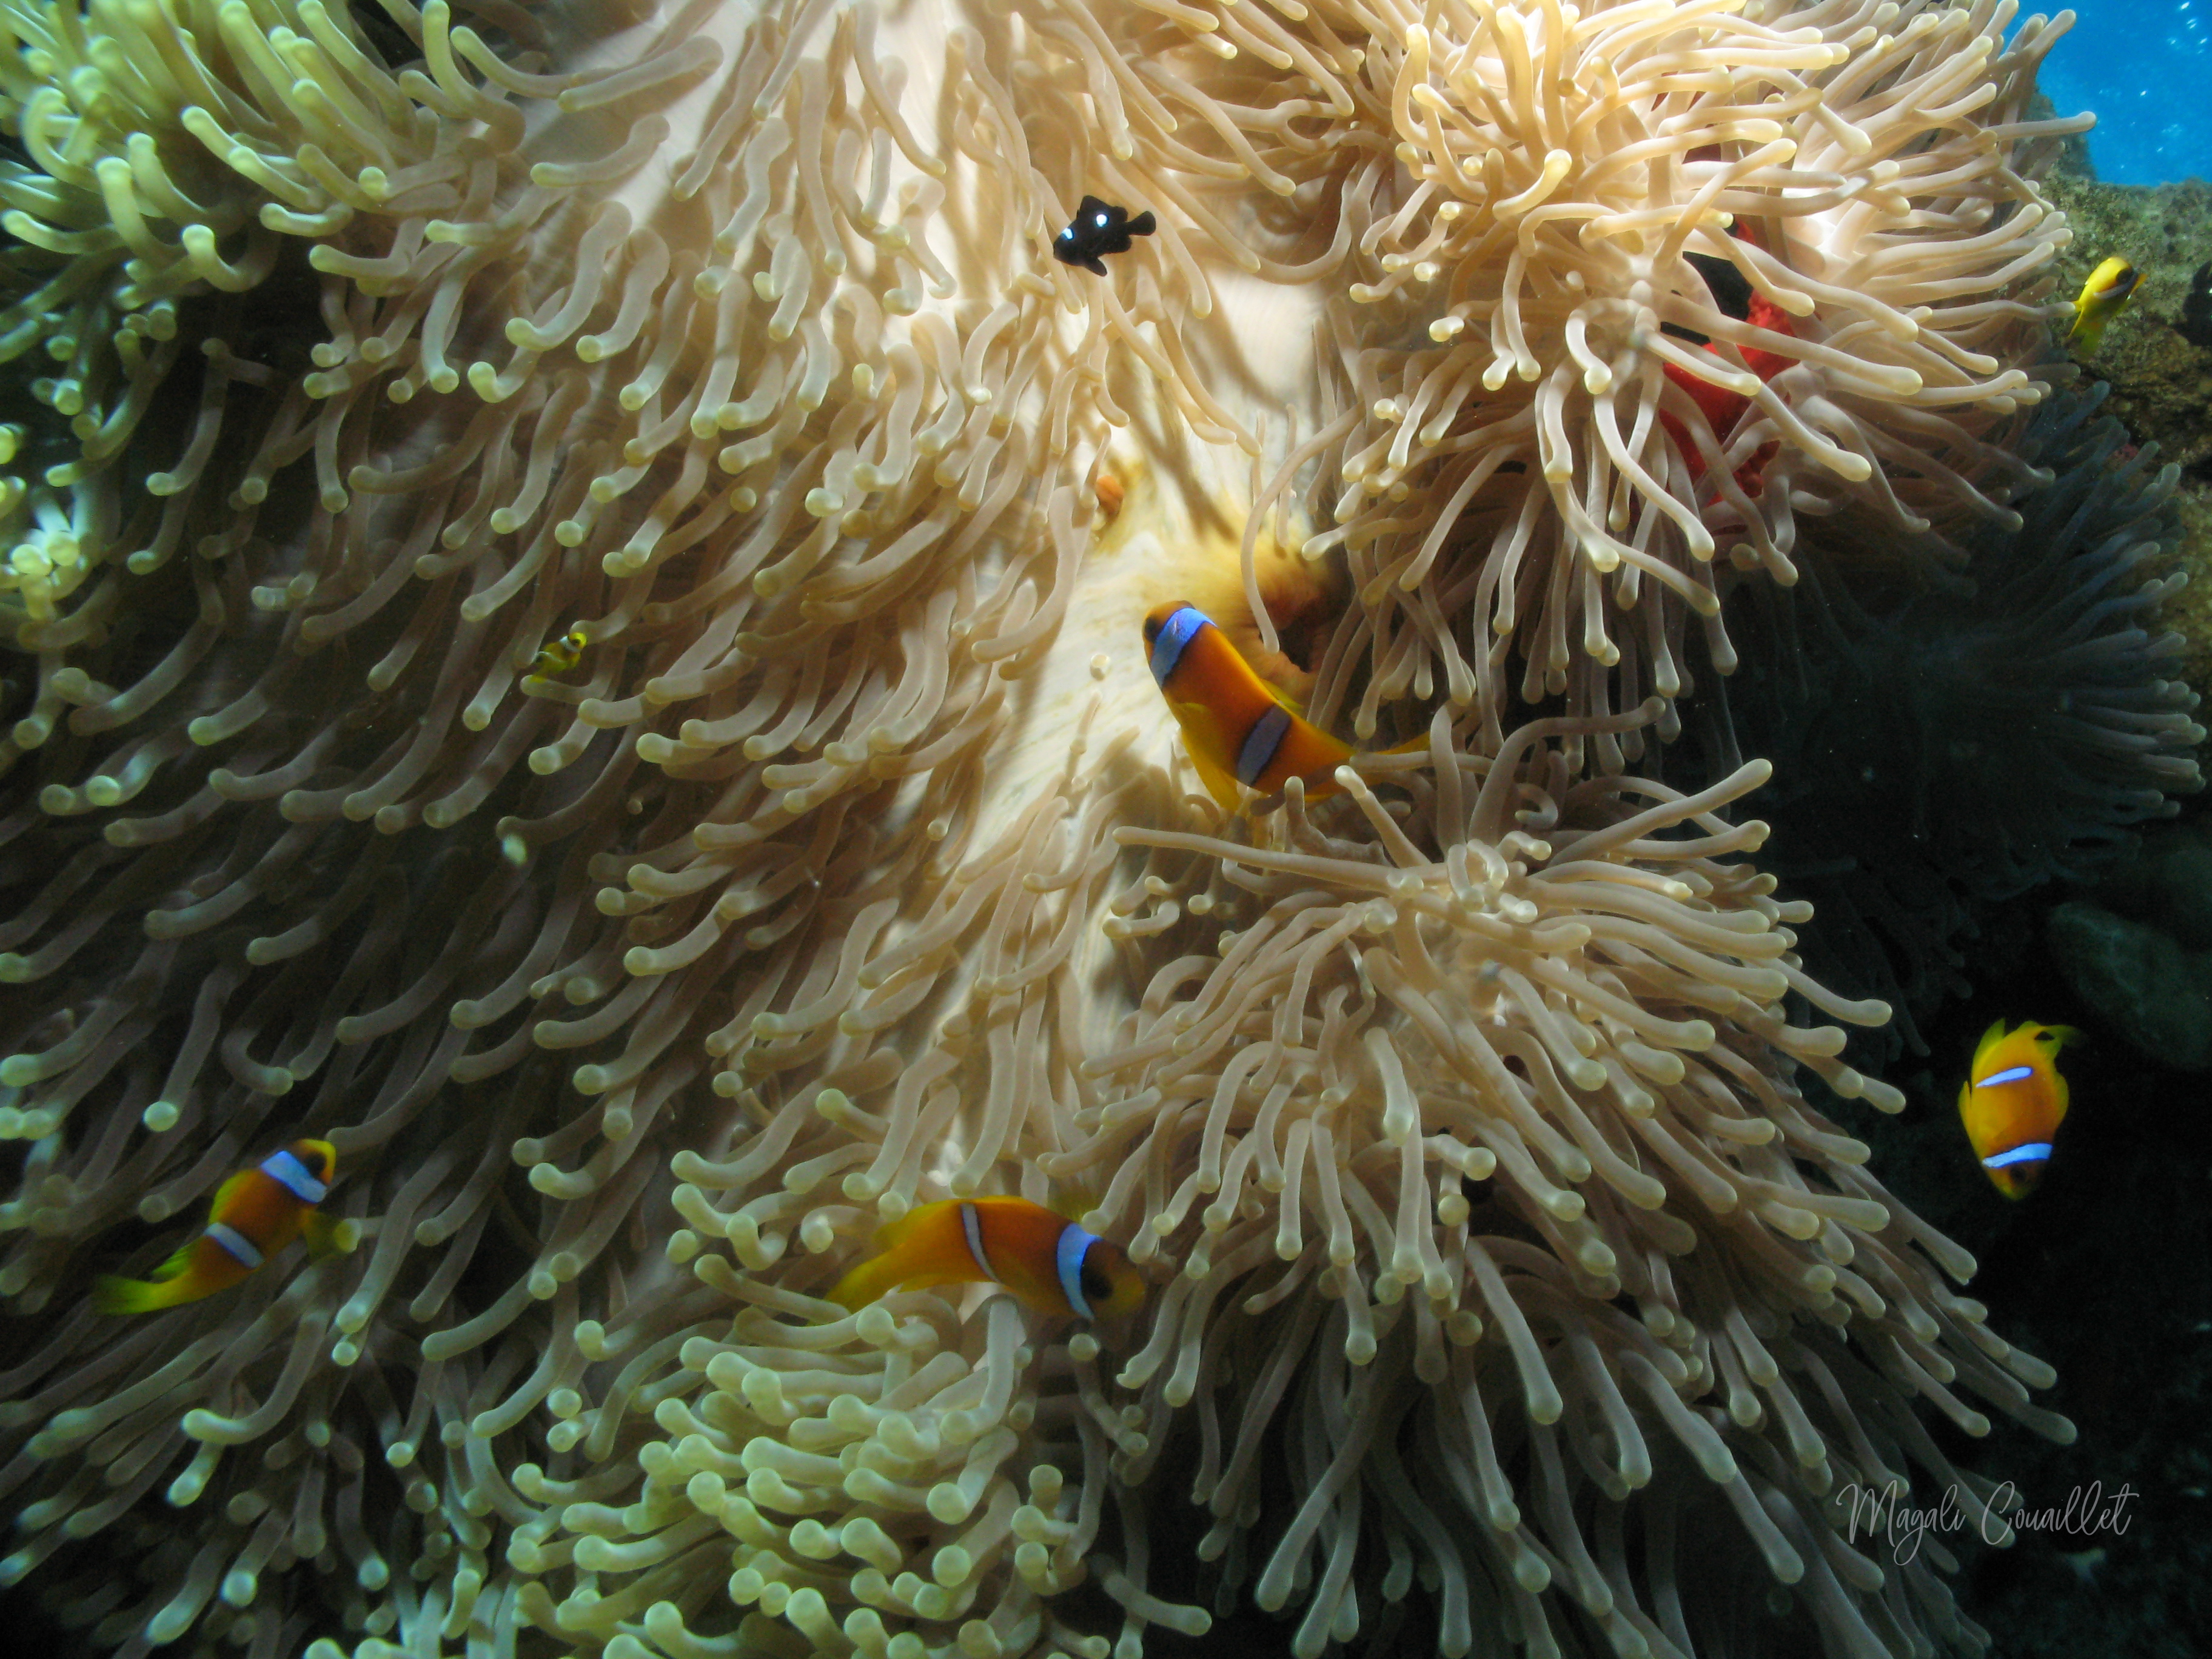 Anémone et poissons-clowns - Anemone and clownfishes